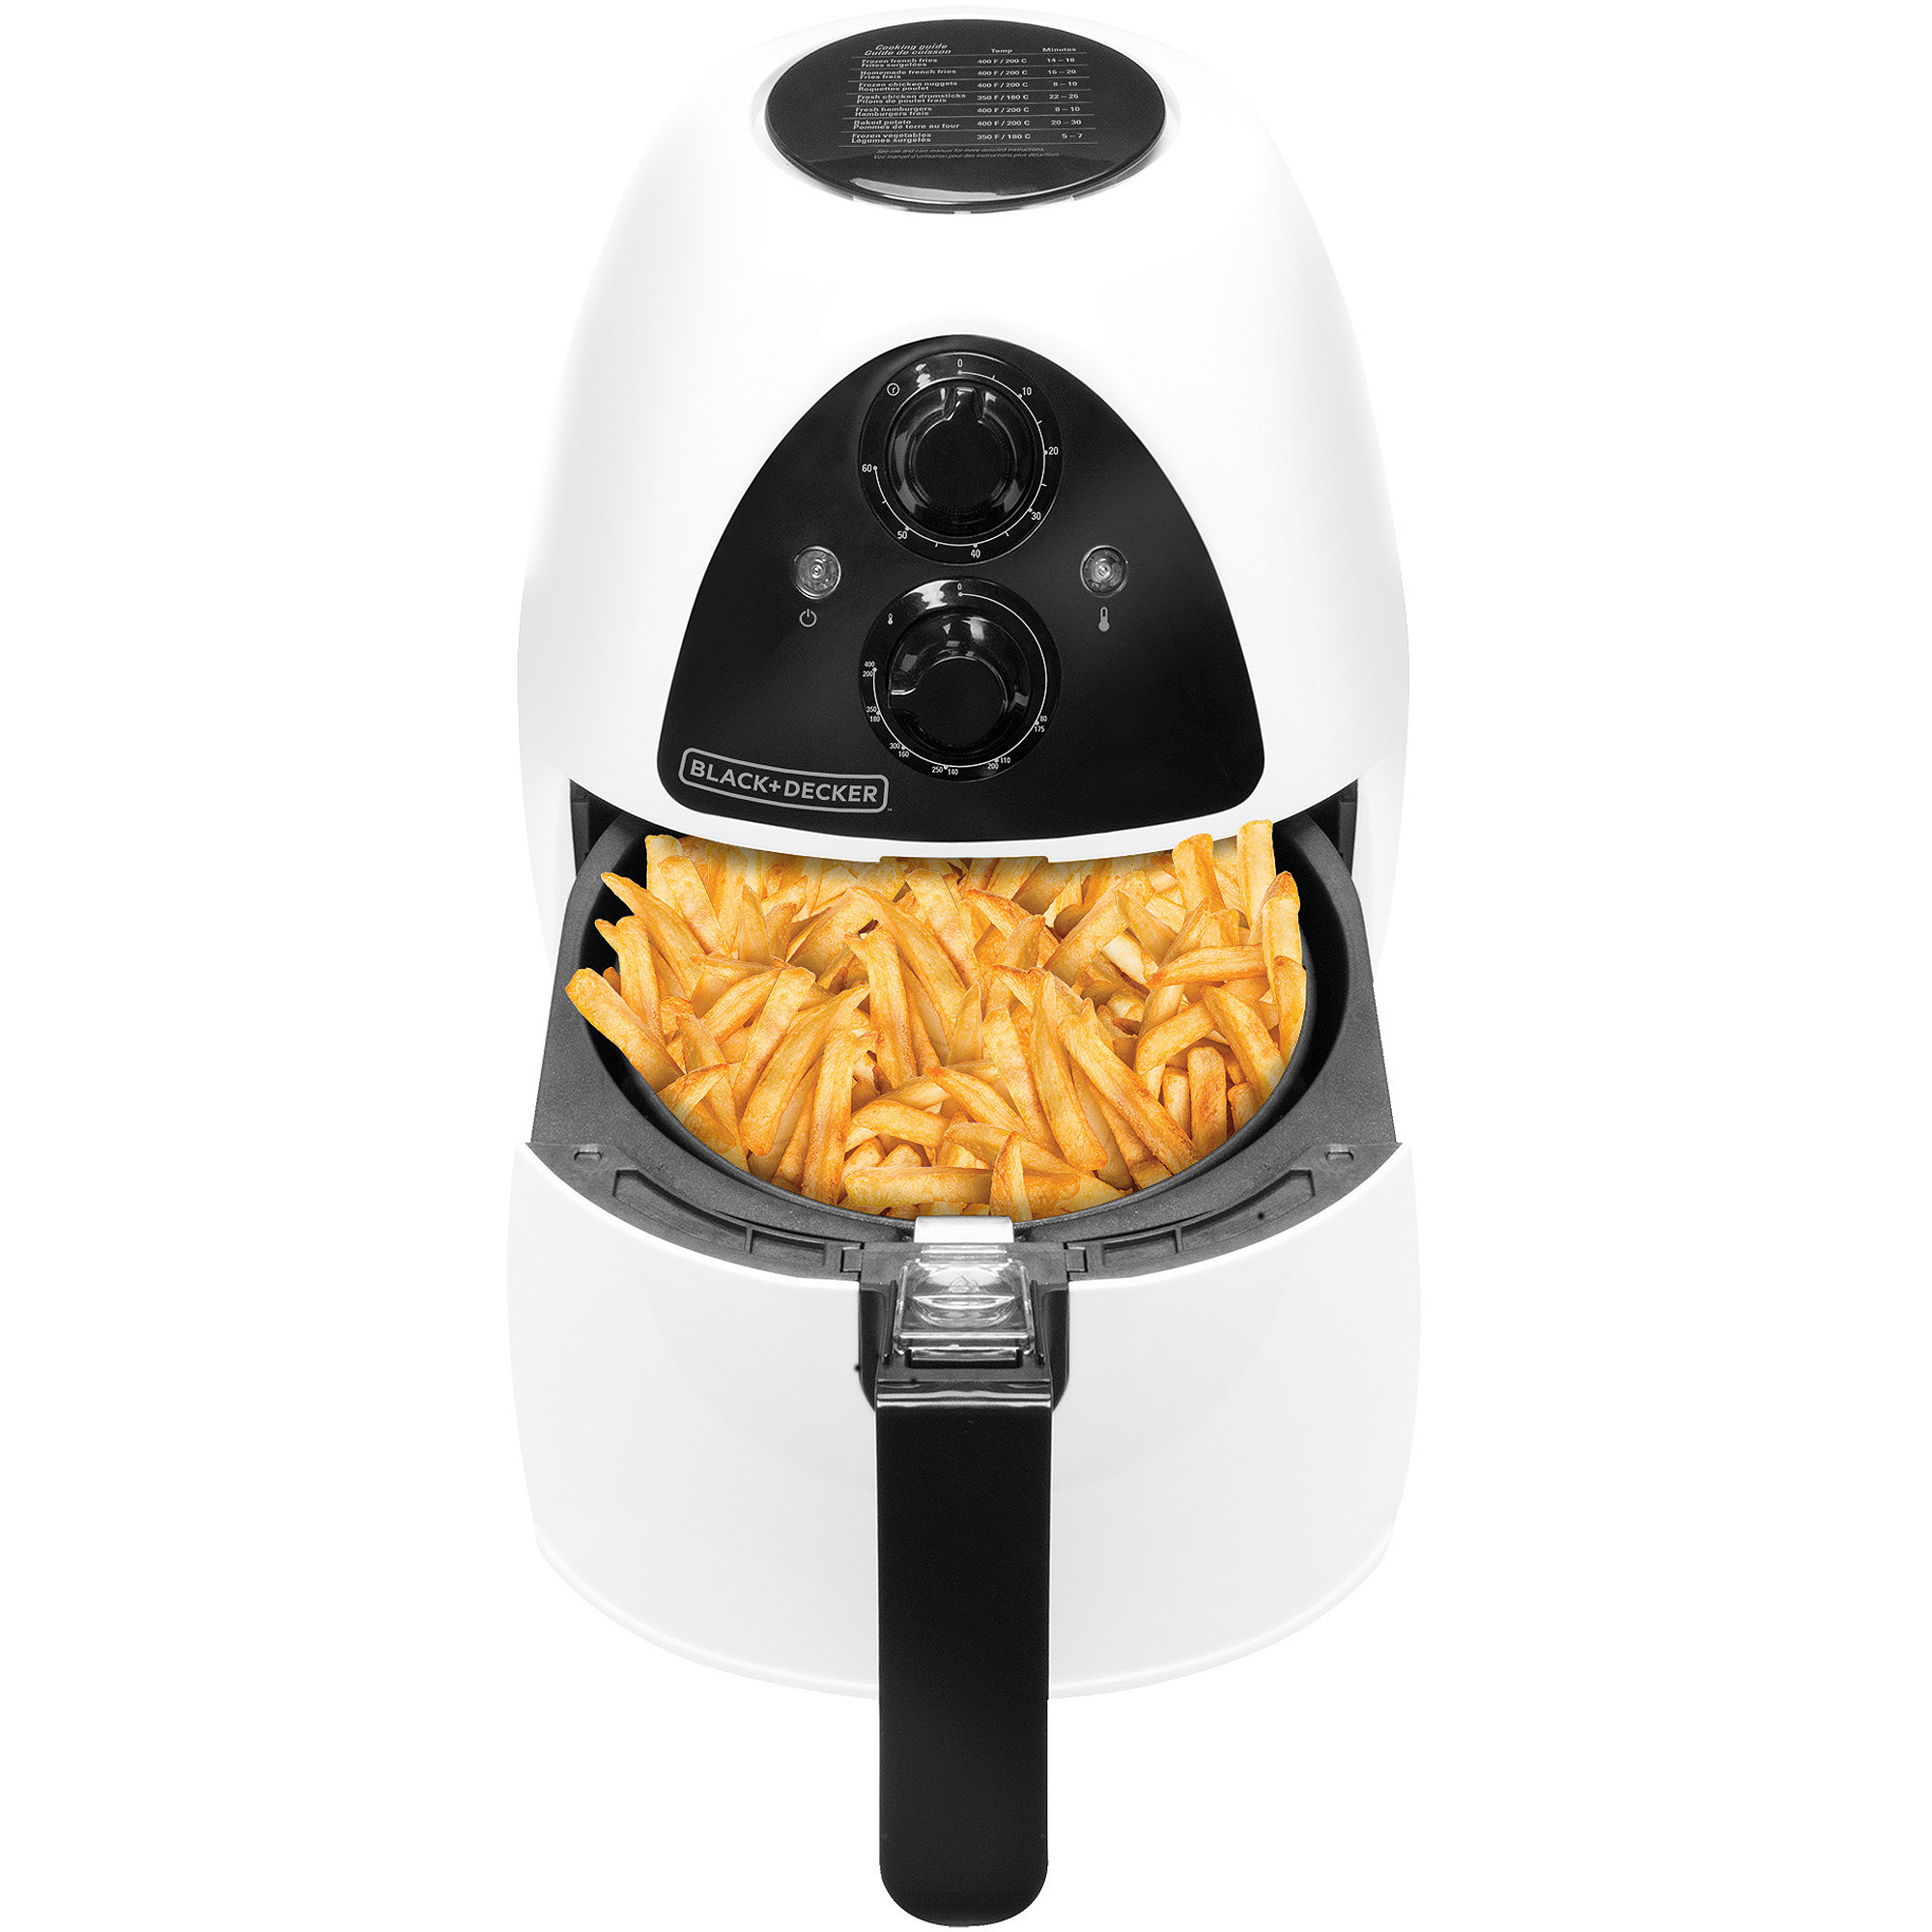 Black & Decker PuriFry Air Fryer, HF100WD